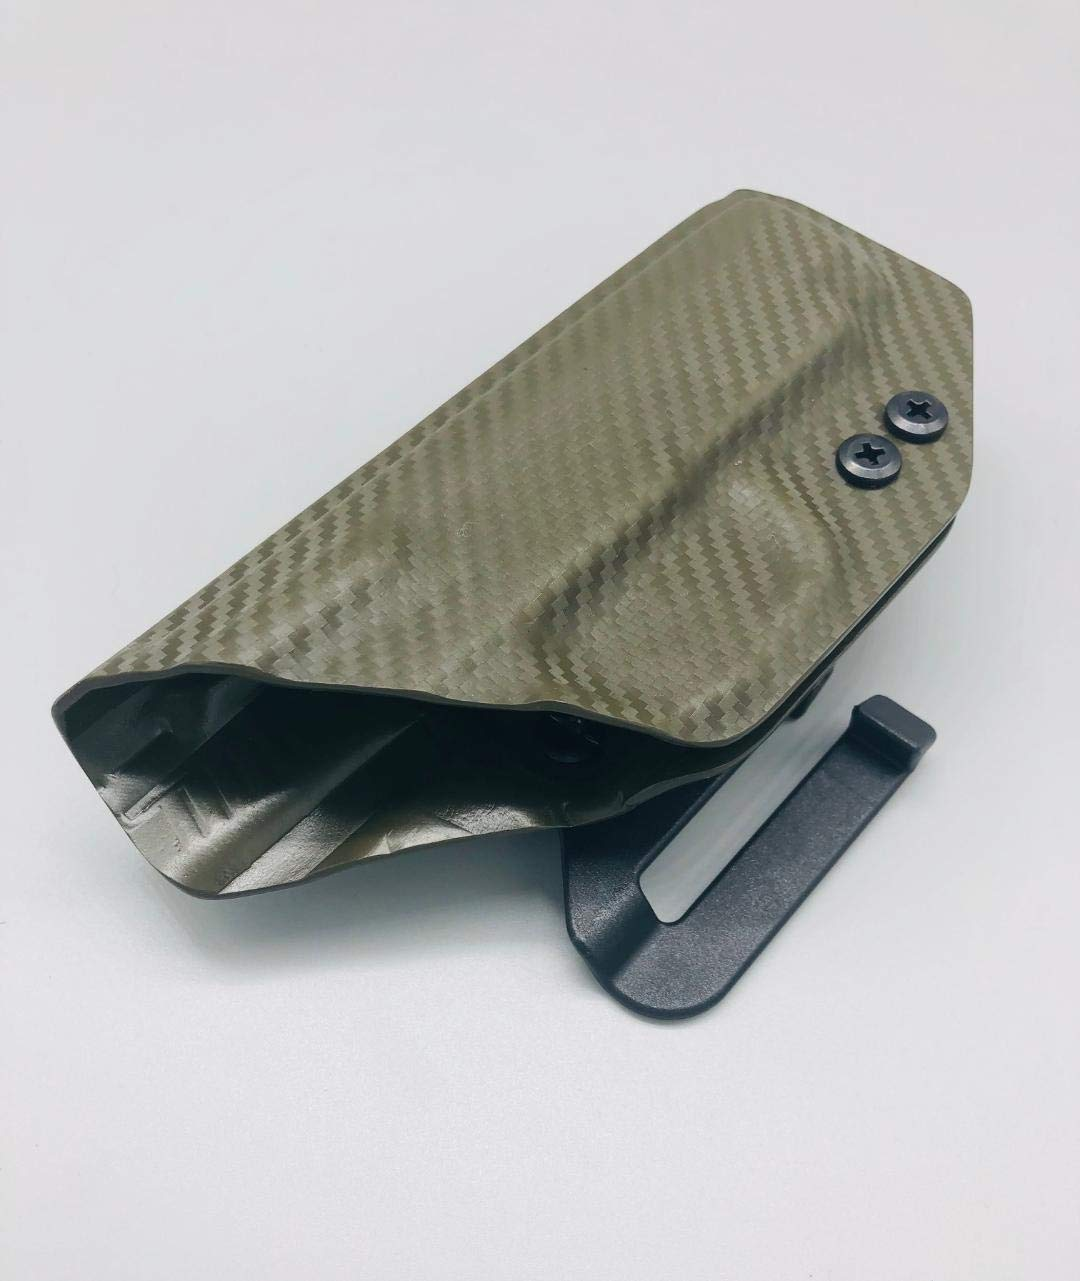 Amazon.com: Neptune Concealment OWB Kydex Holster for Kimber ...